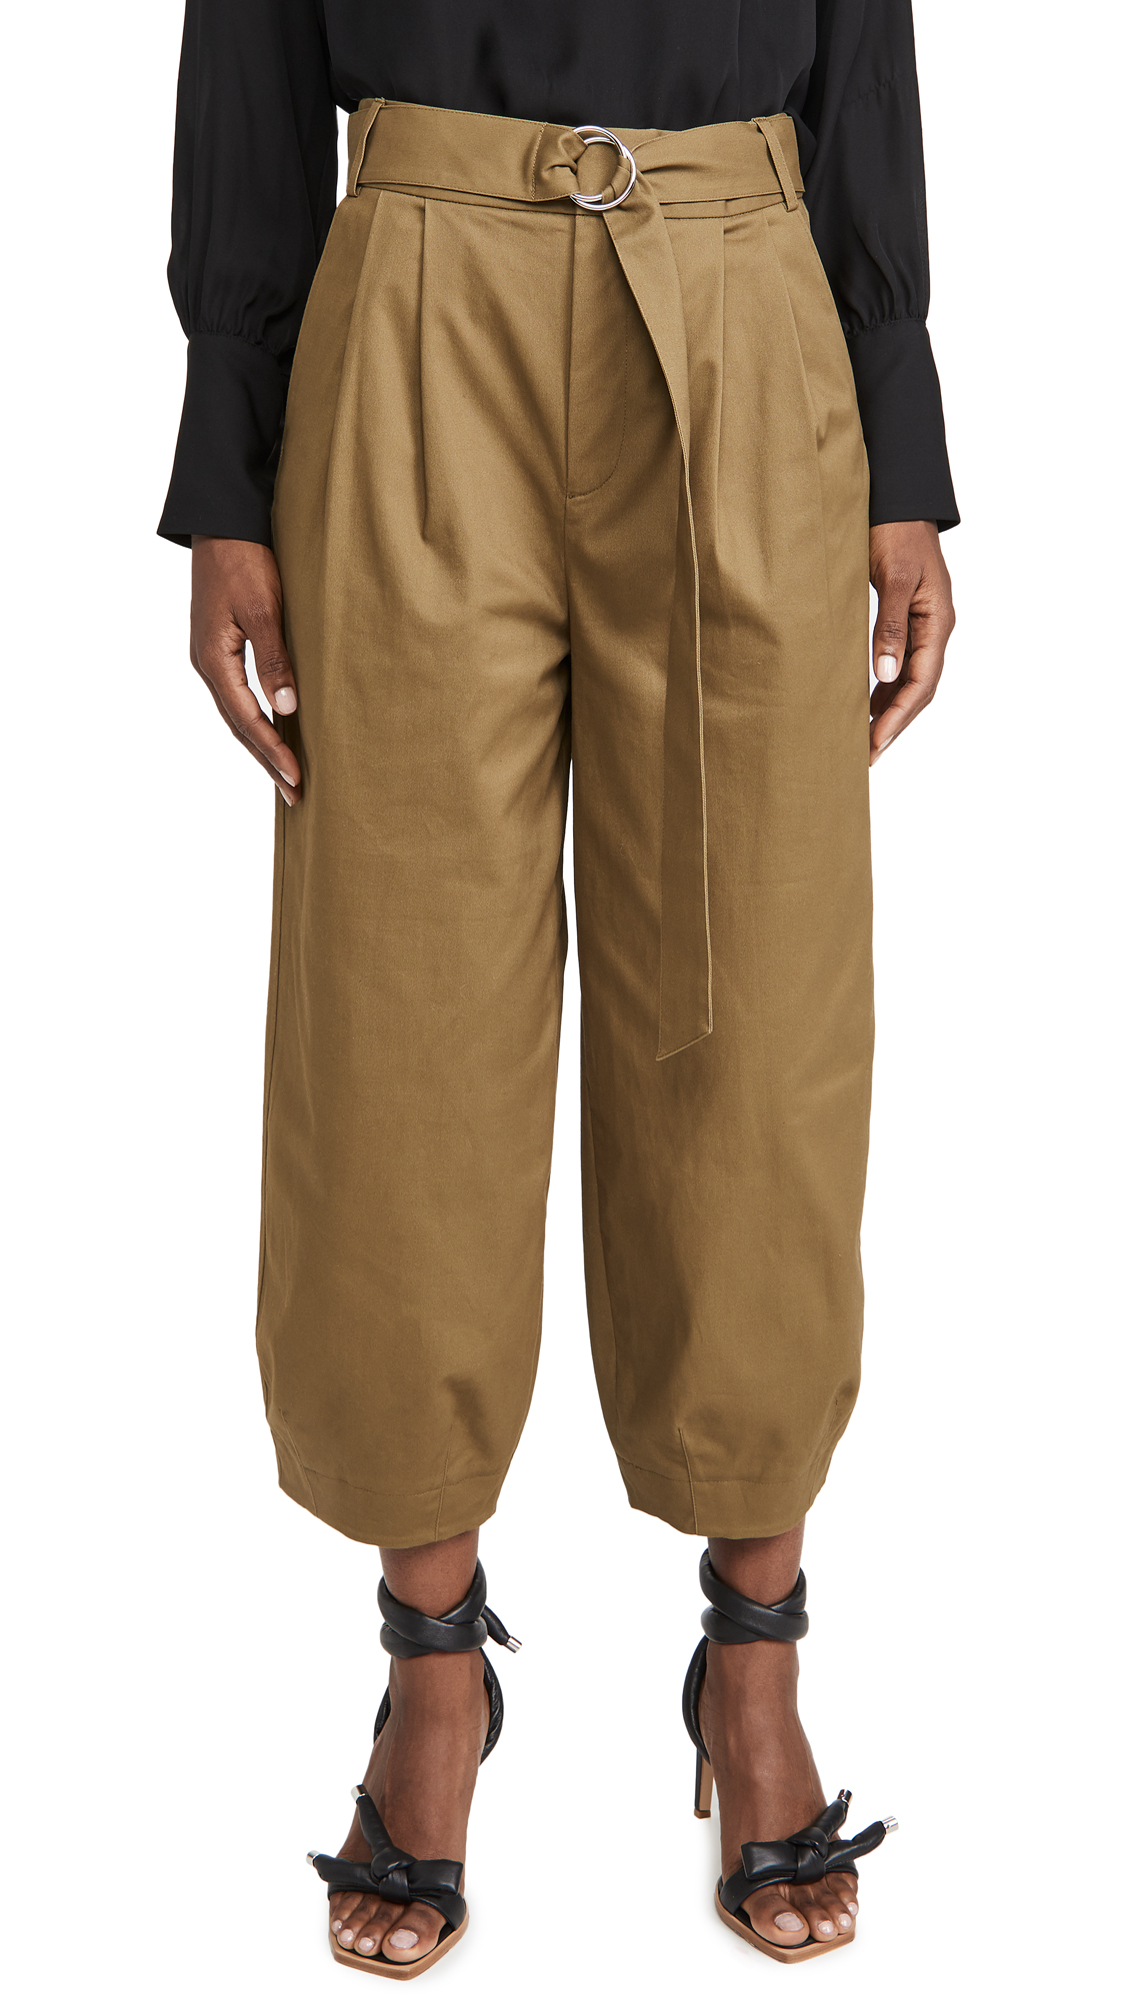 Tibi Cottons STELLA ANKLE LENGTH SCULPTED PANTS